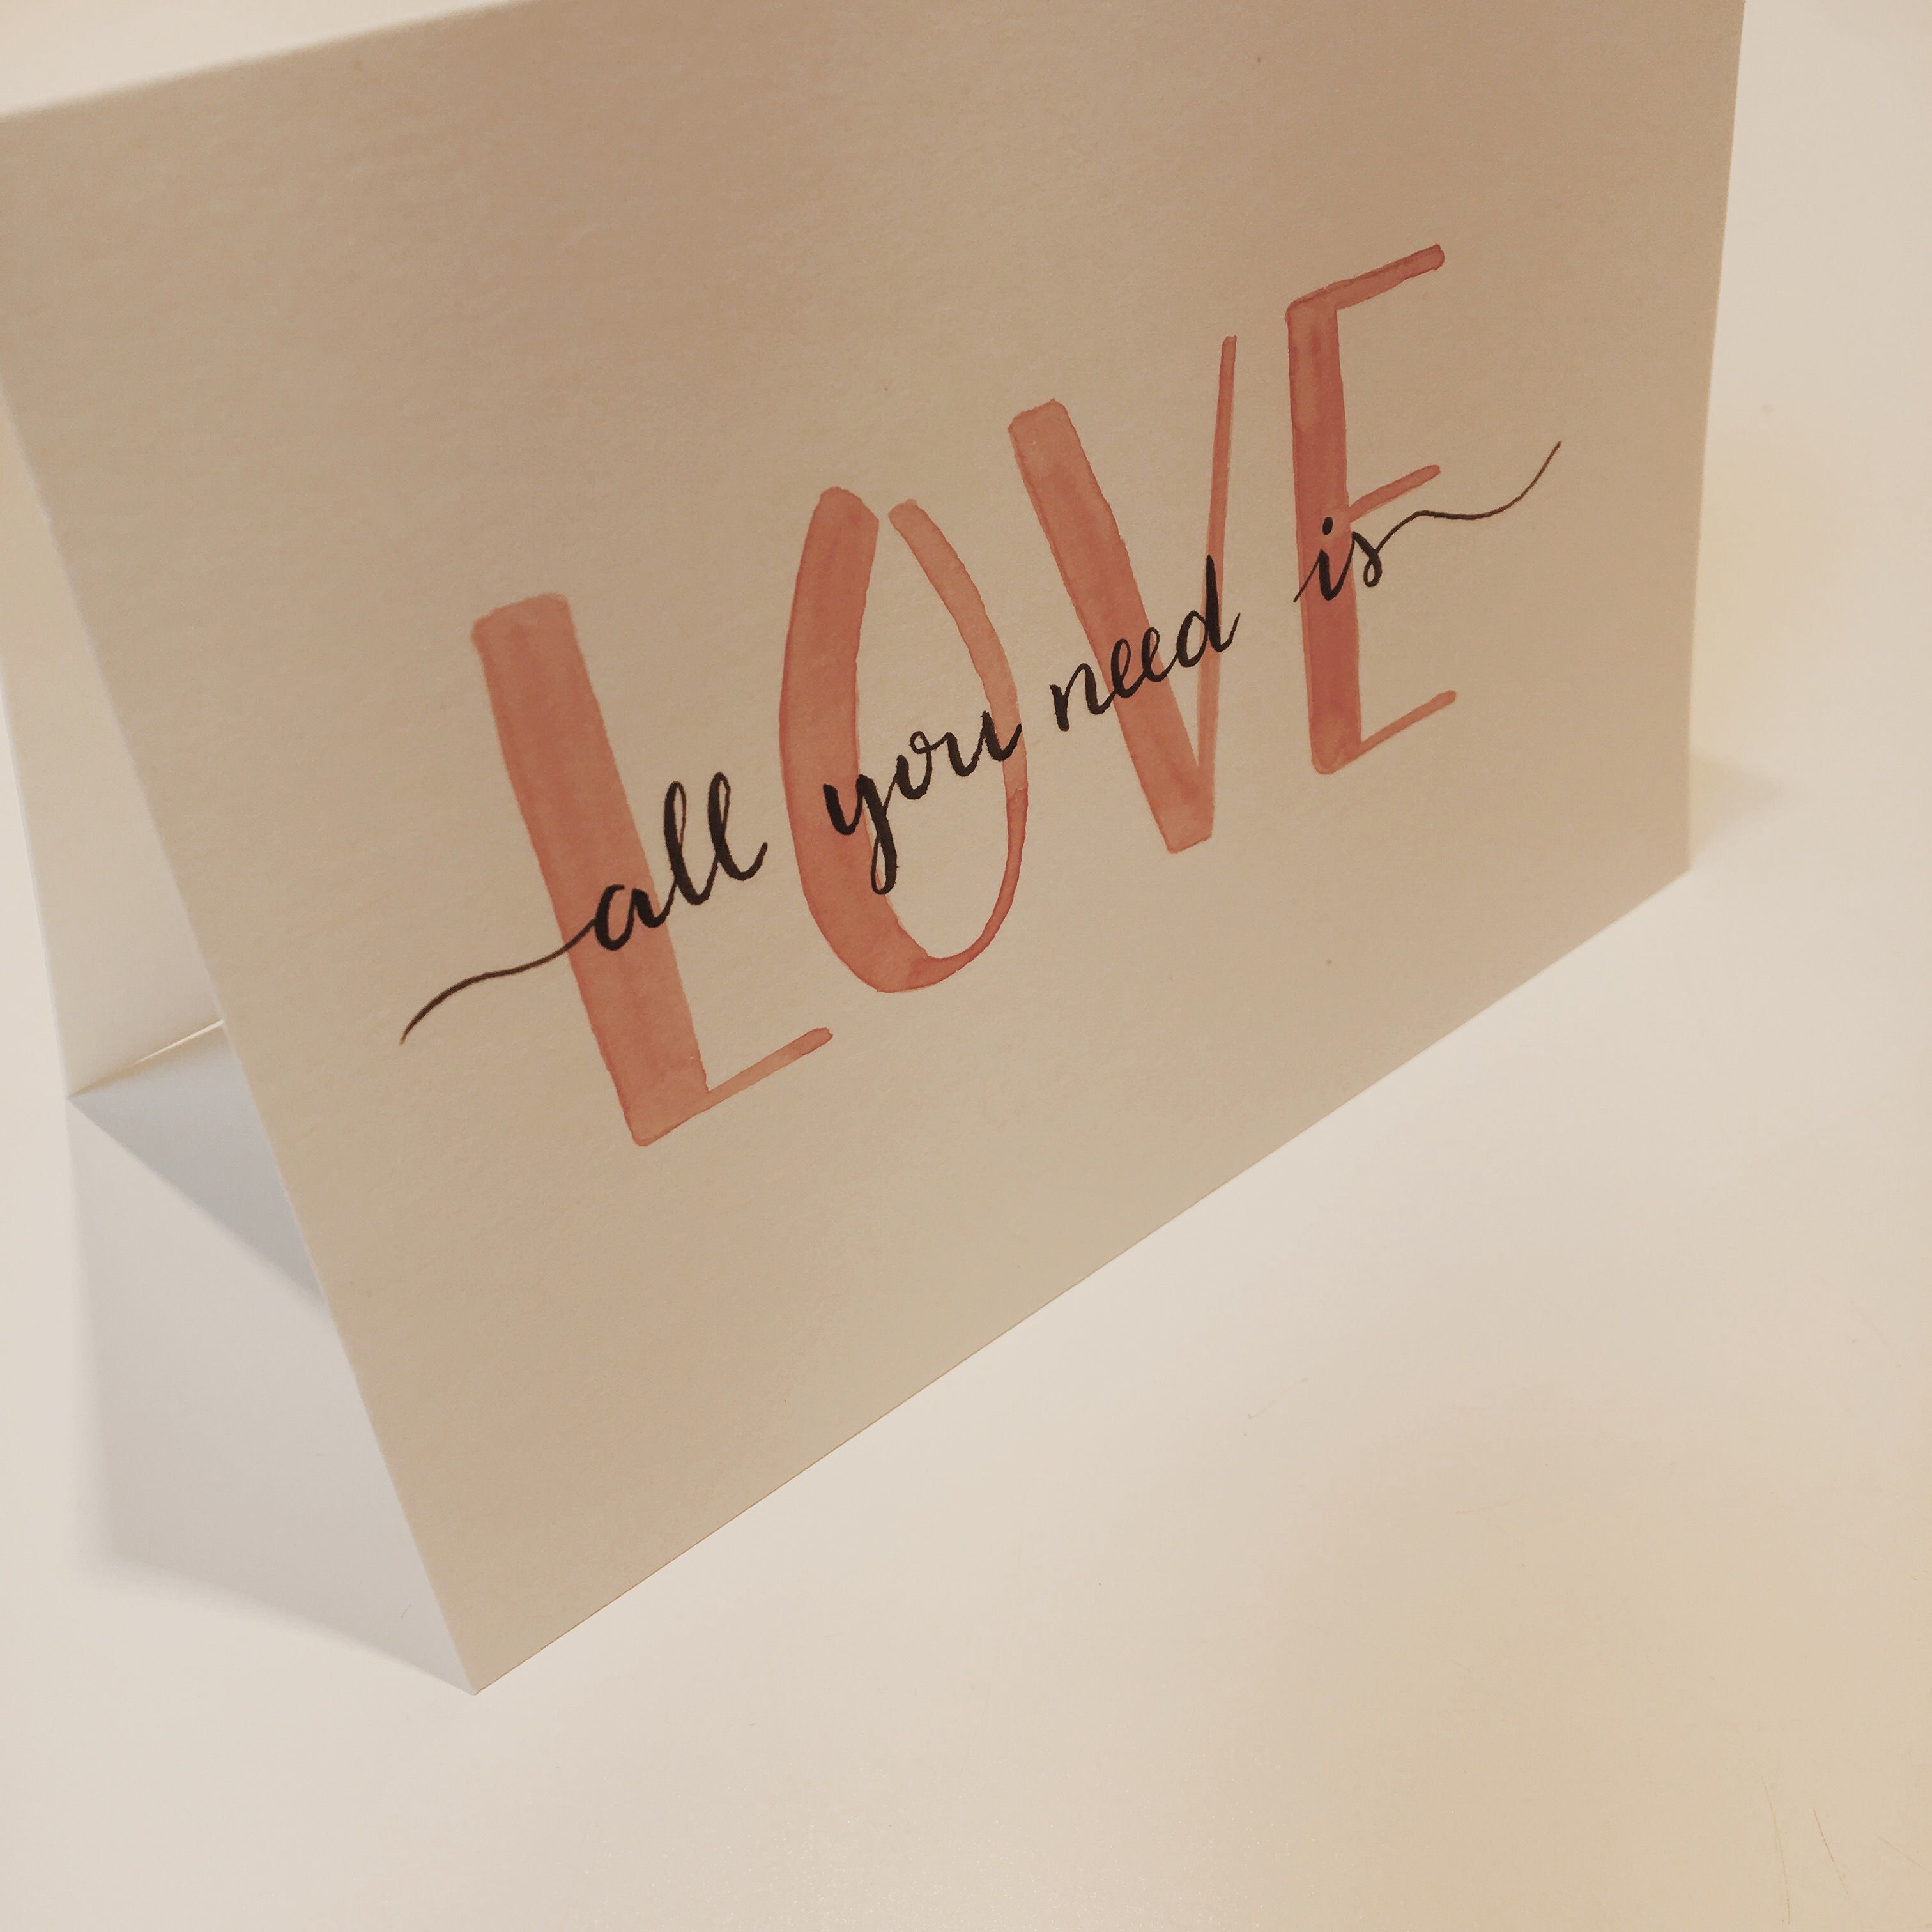 All you need is love -The Beatles, hand lettered lyrics, greeting card, handmade card, watercolor